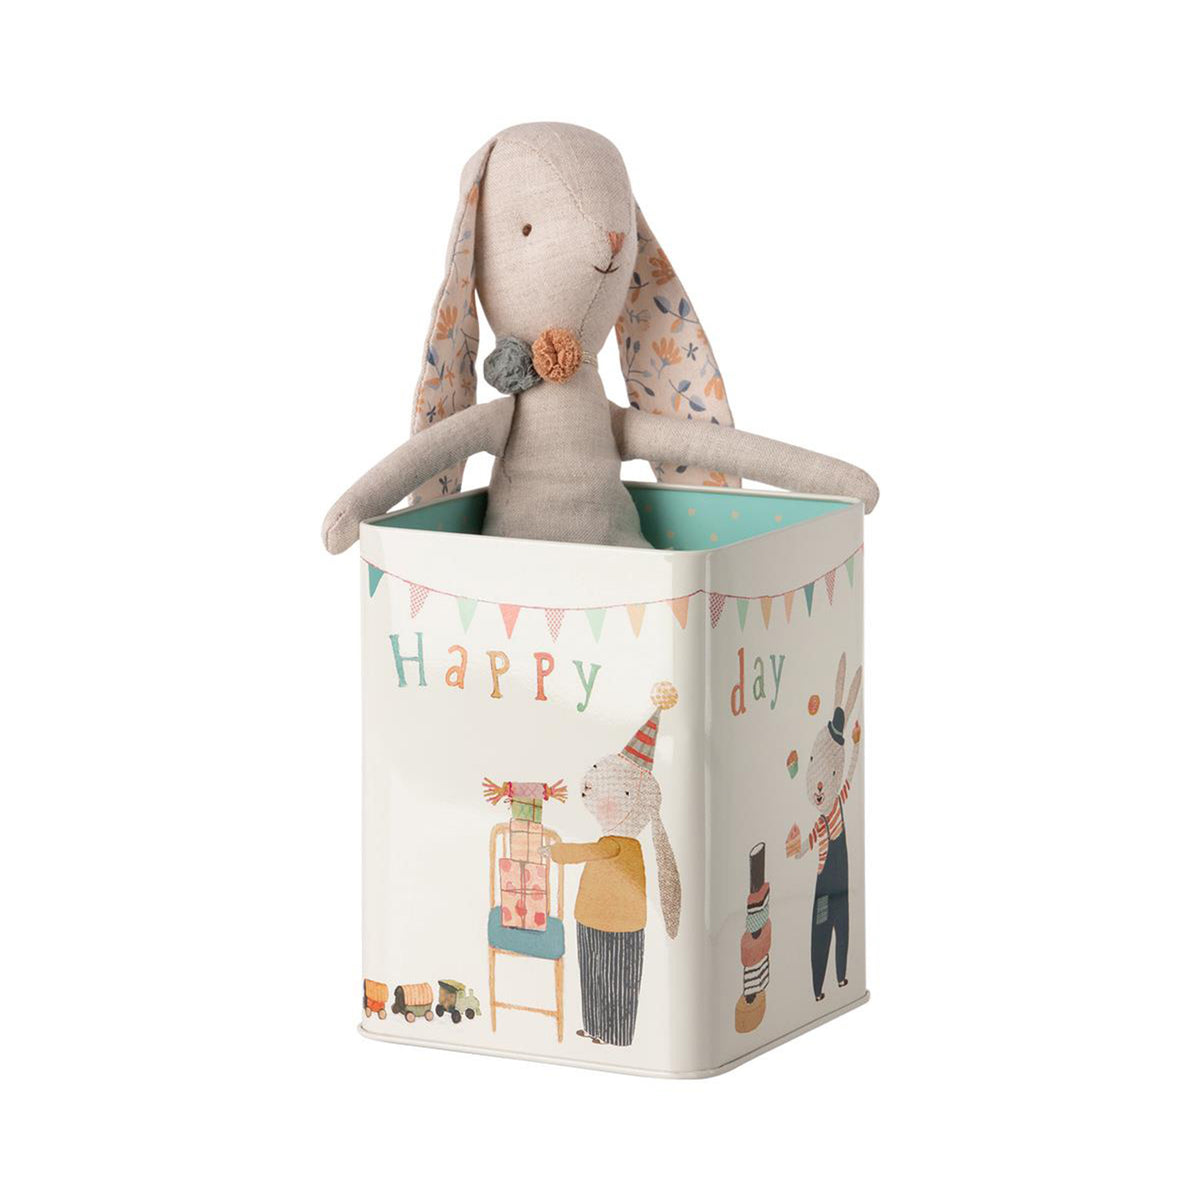 Maileg Happy Day Bunny In Box Medium - Scandi Minimal